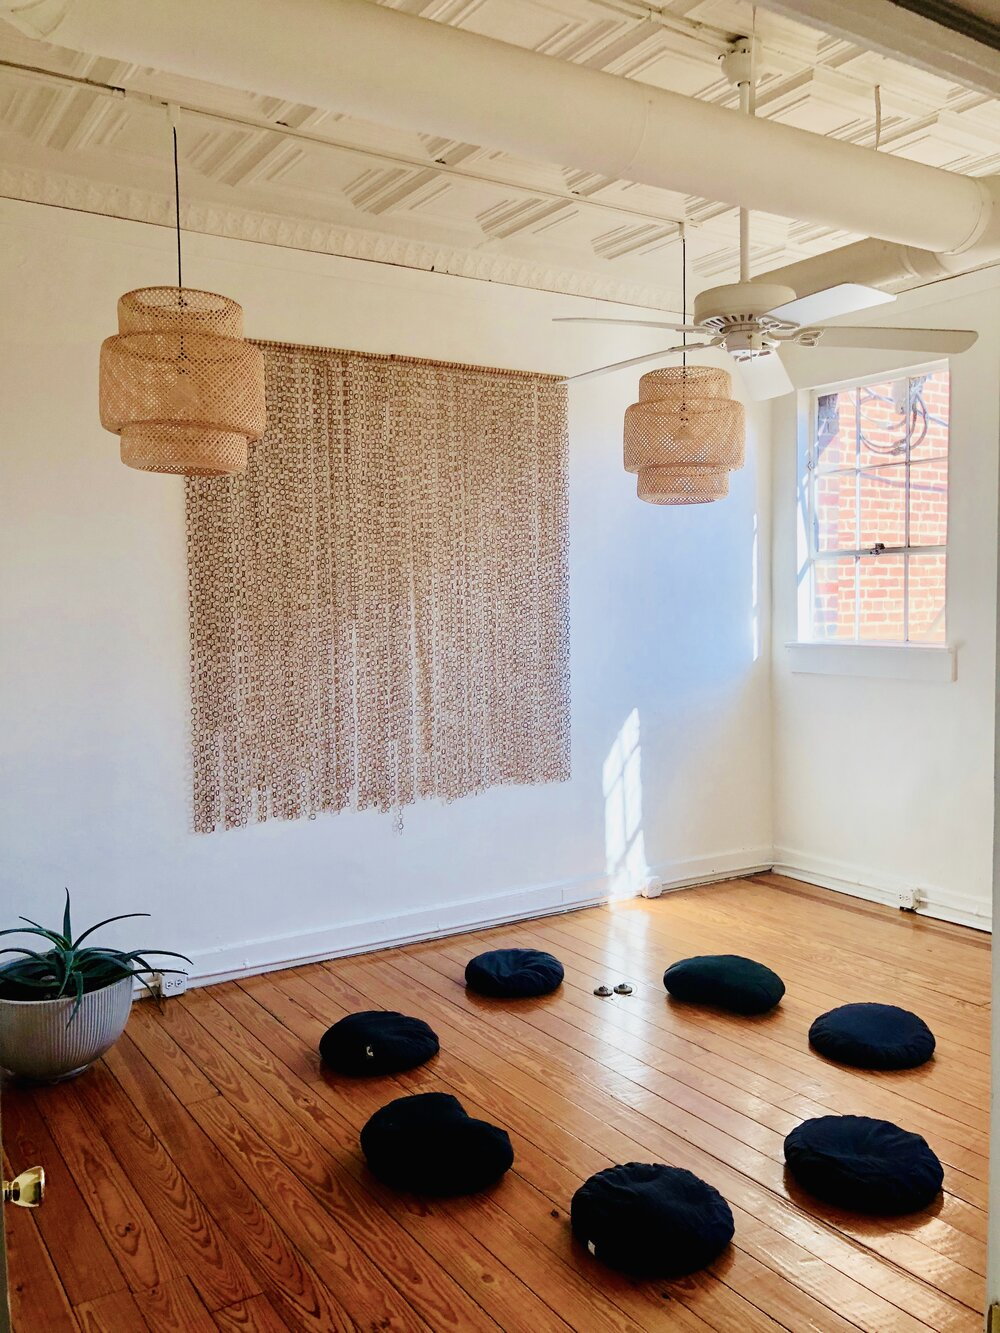 "Jan 1<br/><a href=""http://www.ashtangayogarichmond.com/workshops-and-events/"">New Year's Day Restorative Yoga & Meditation</a>"